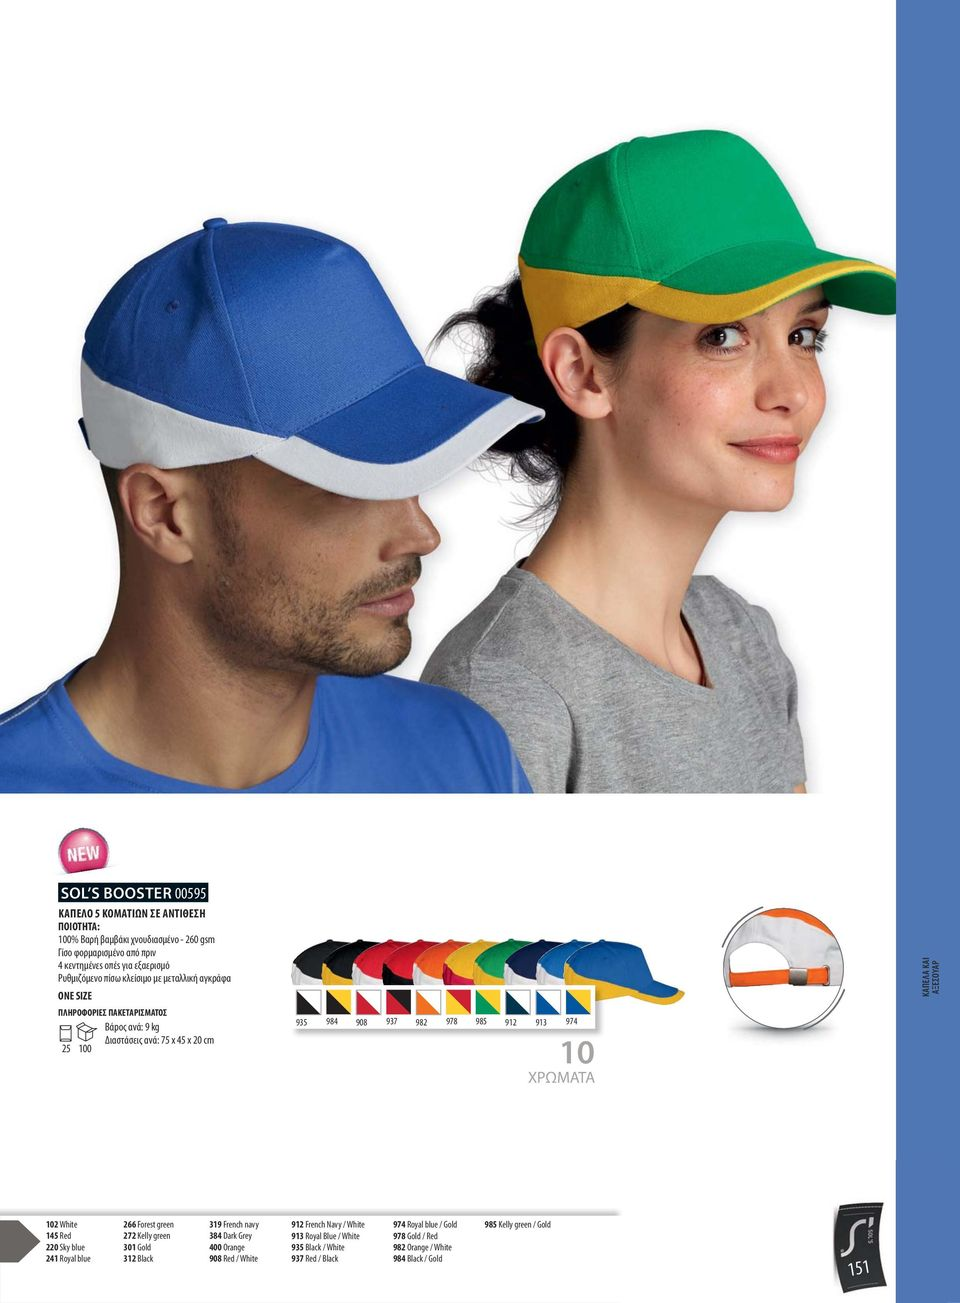 2c99899ce2b7 White 145 Red 220 Sky blue 241 Royal blue 266 Forest green 272 Kelly green  301